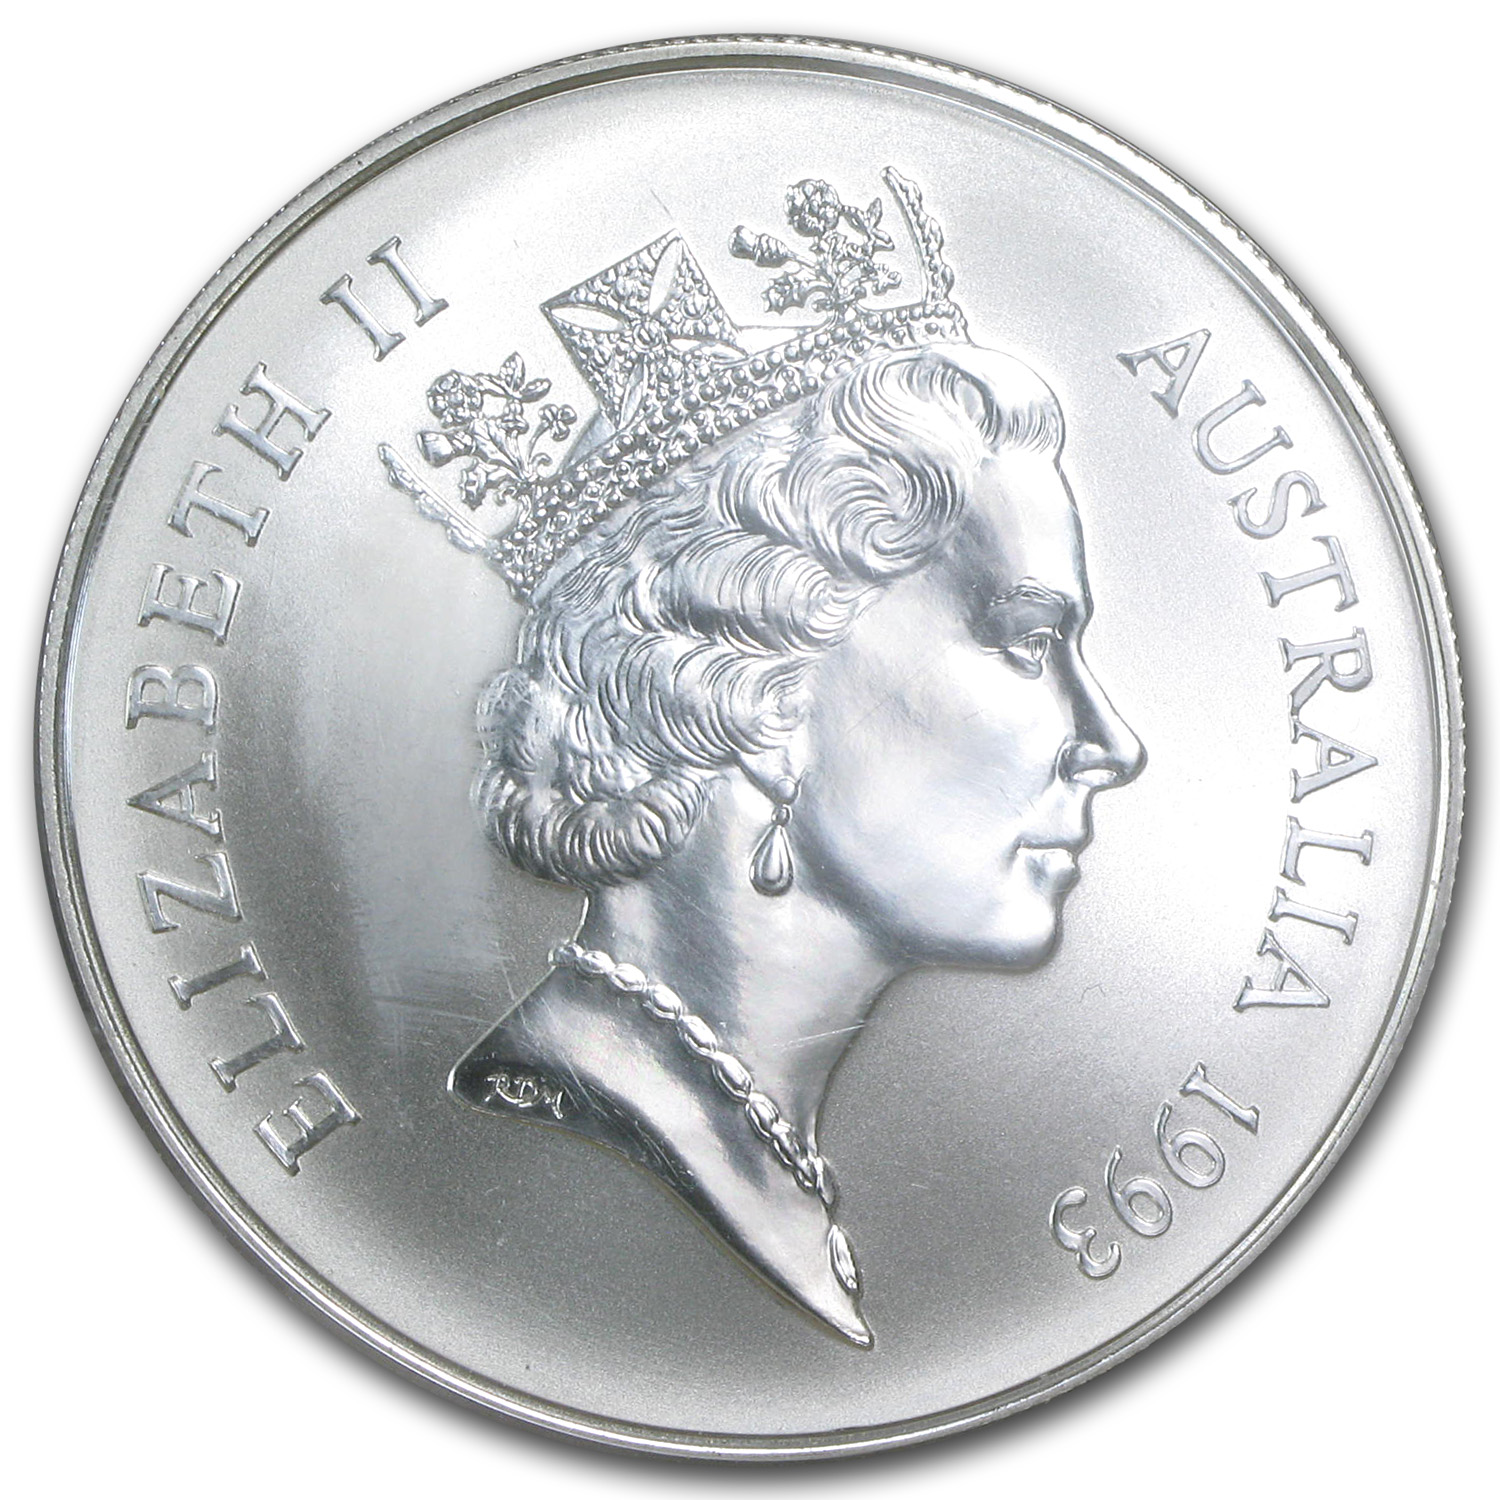 1993 Australia 1 oz Silver Kangaroo (In Display Card)